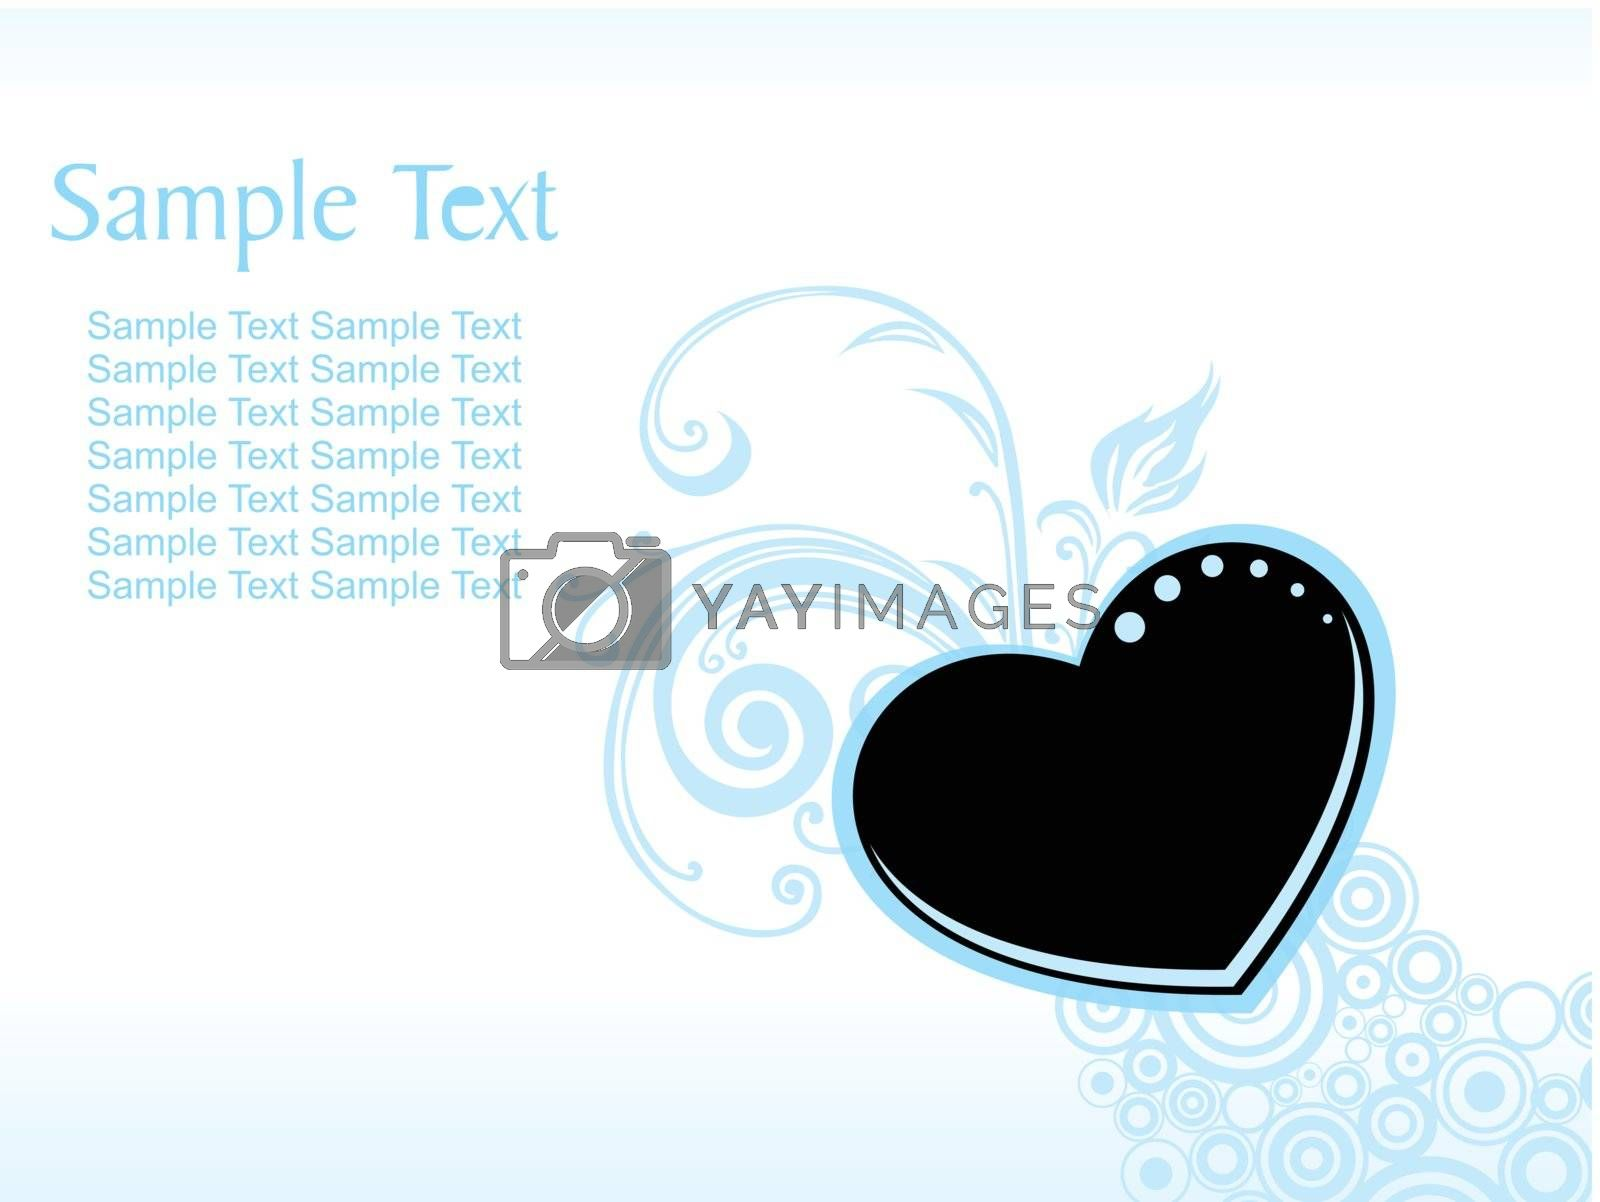 vector wallpaper, background with heart, flower and circle element